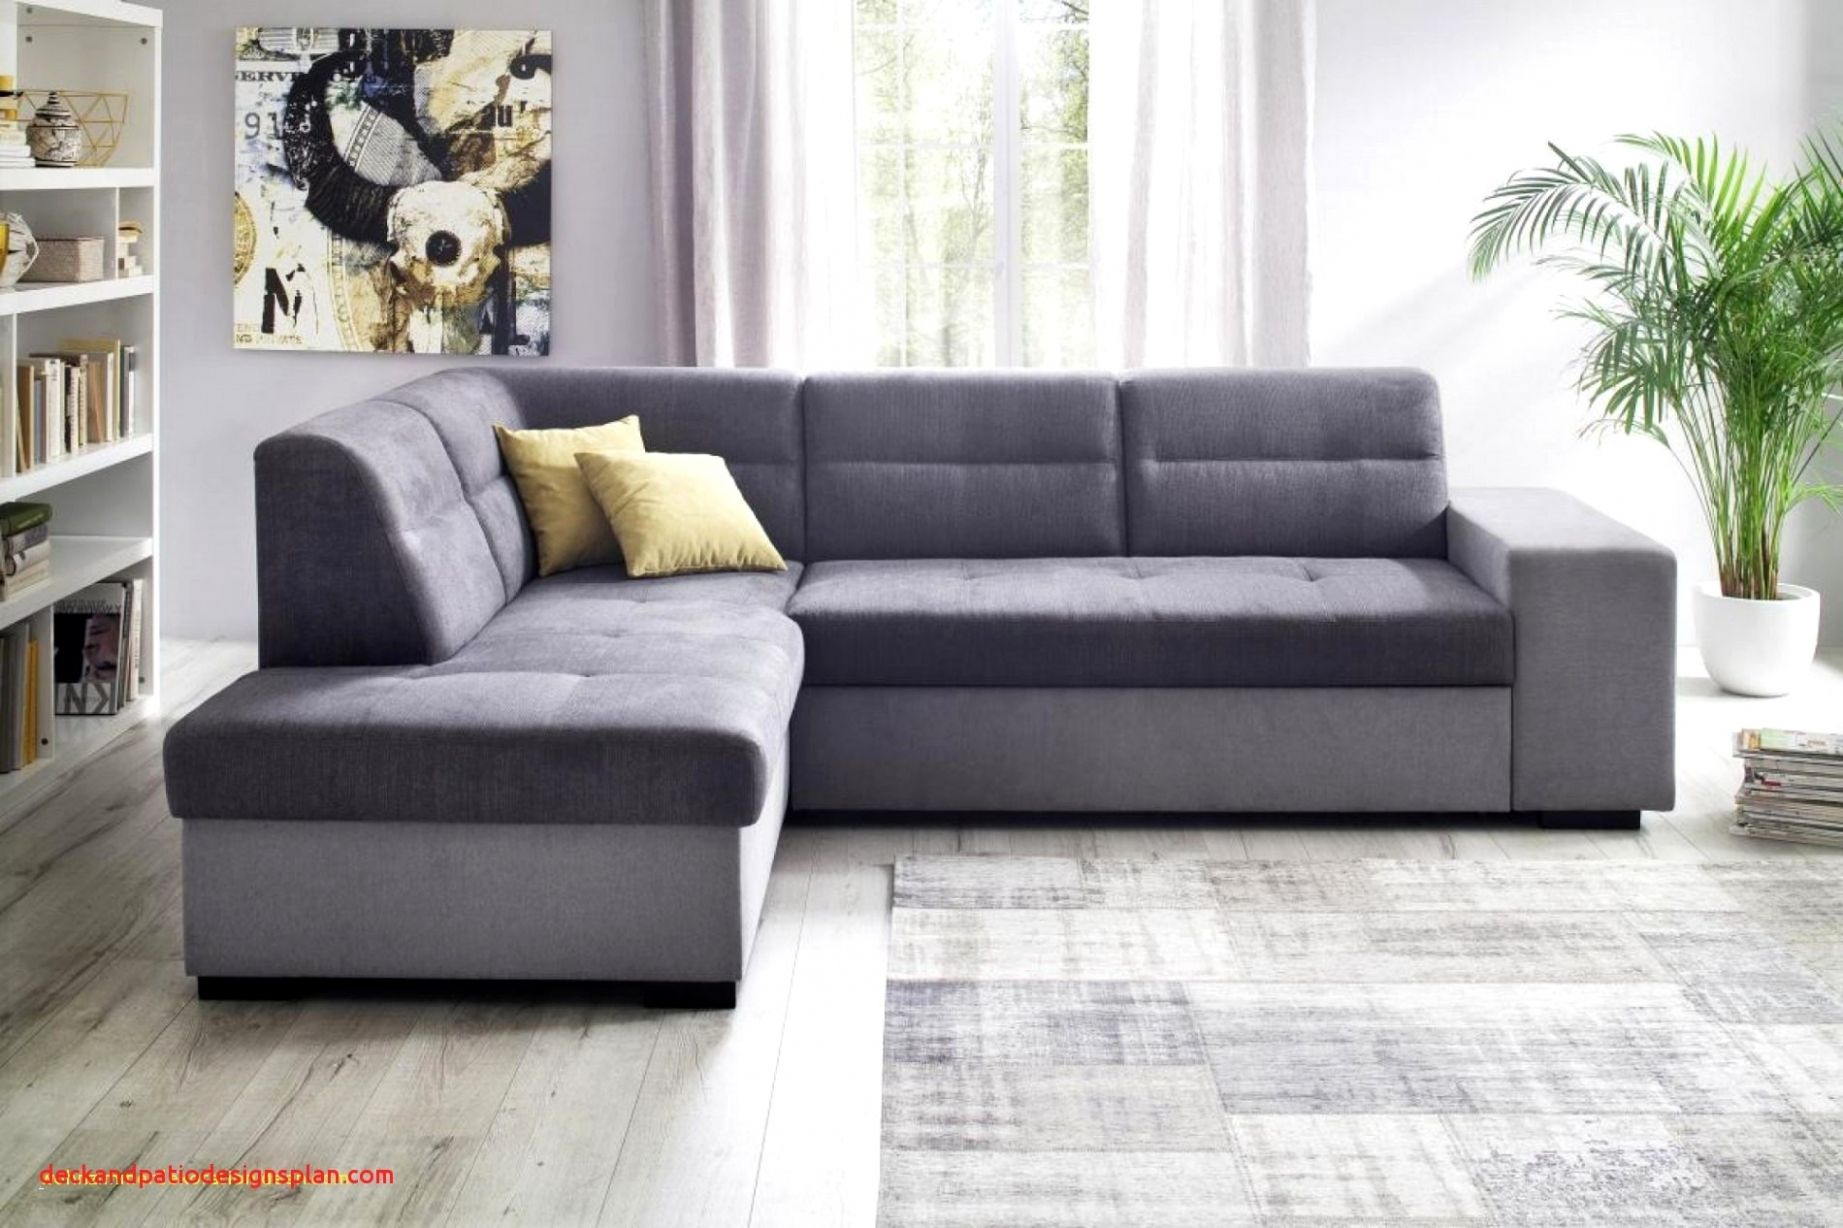 30 sch n wohnzimmer couch bei otto wohndesign. Black Bedroom Furniture Sets. Home Design Ideas